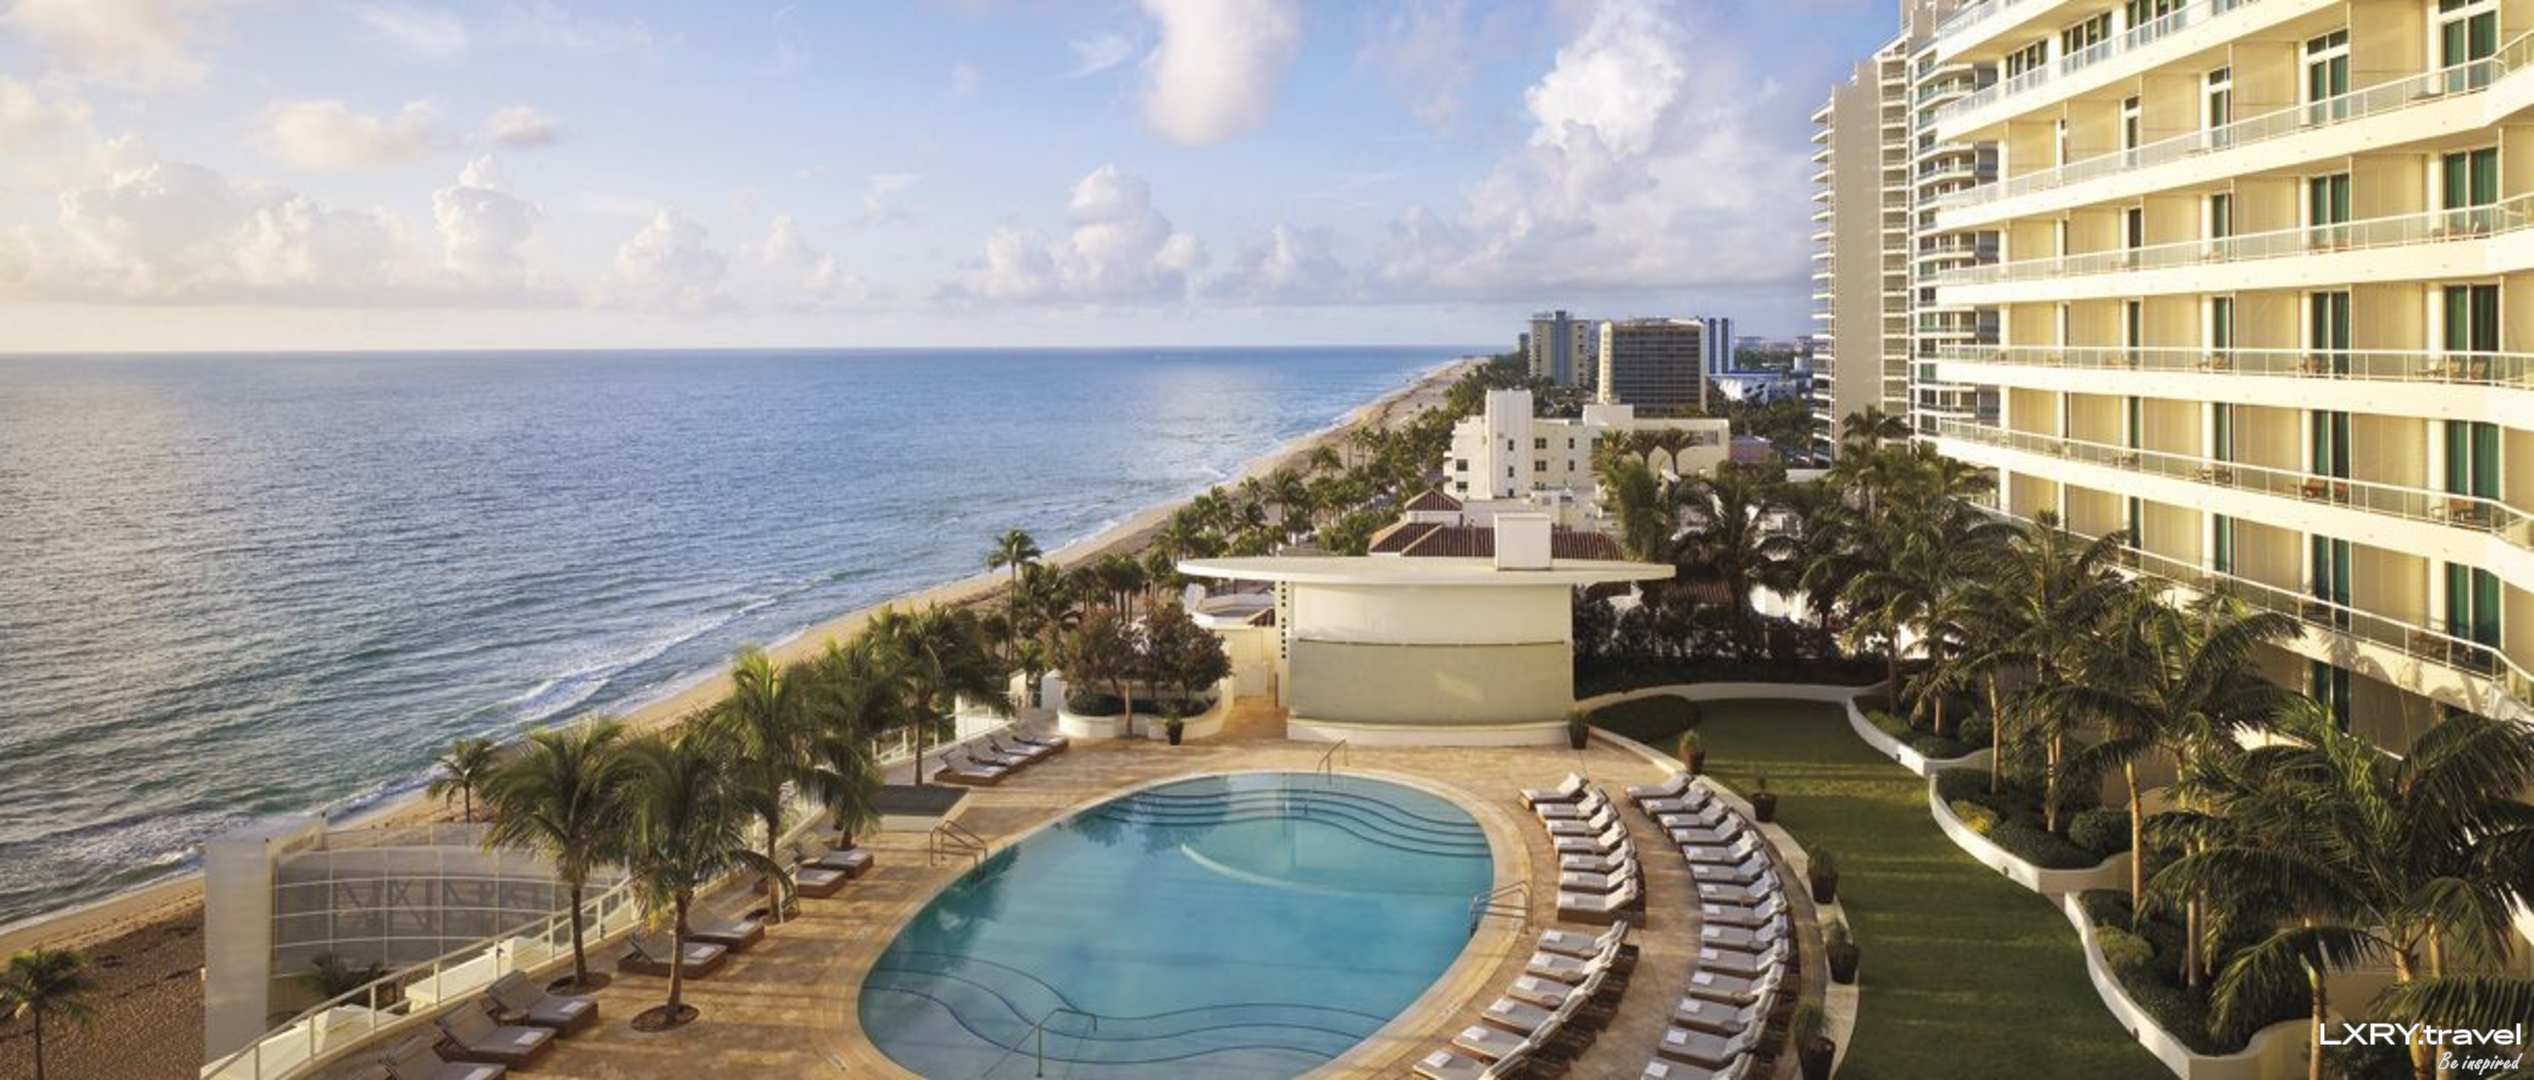 The Ritz-Carlton, Fort Lauderdale 1/43